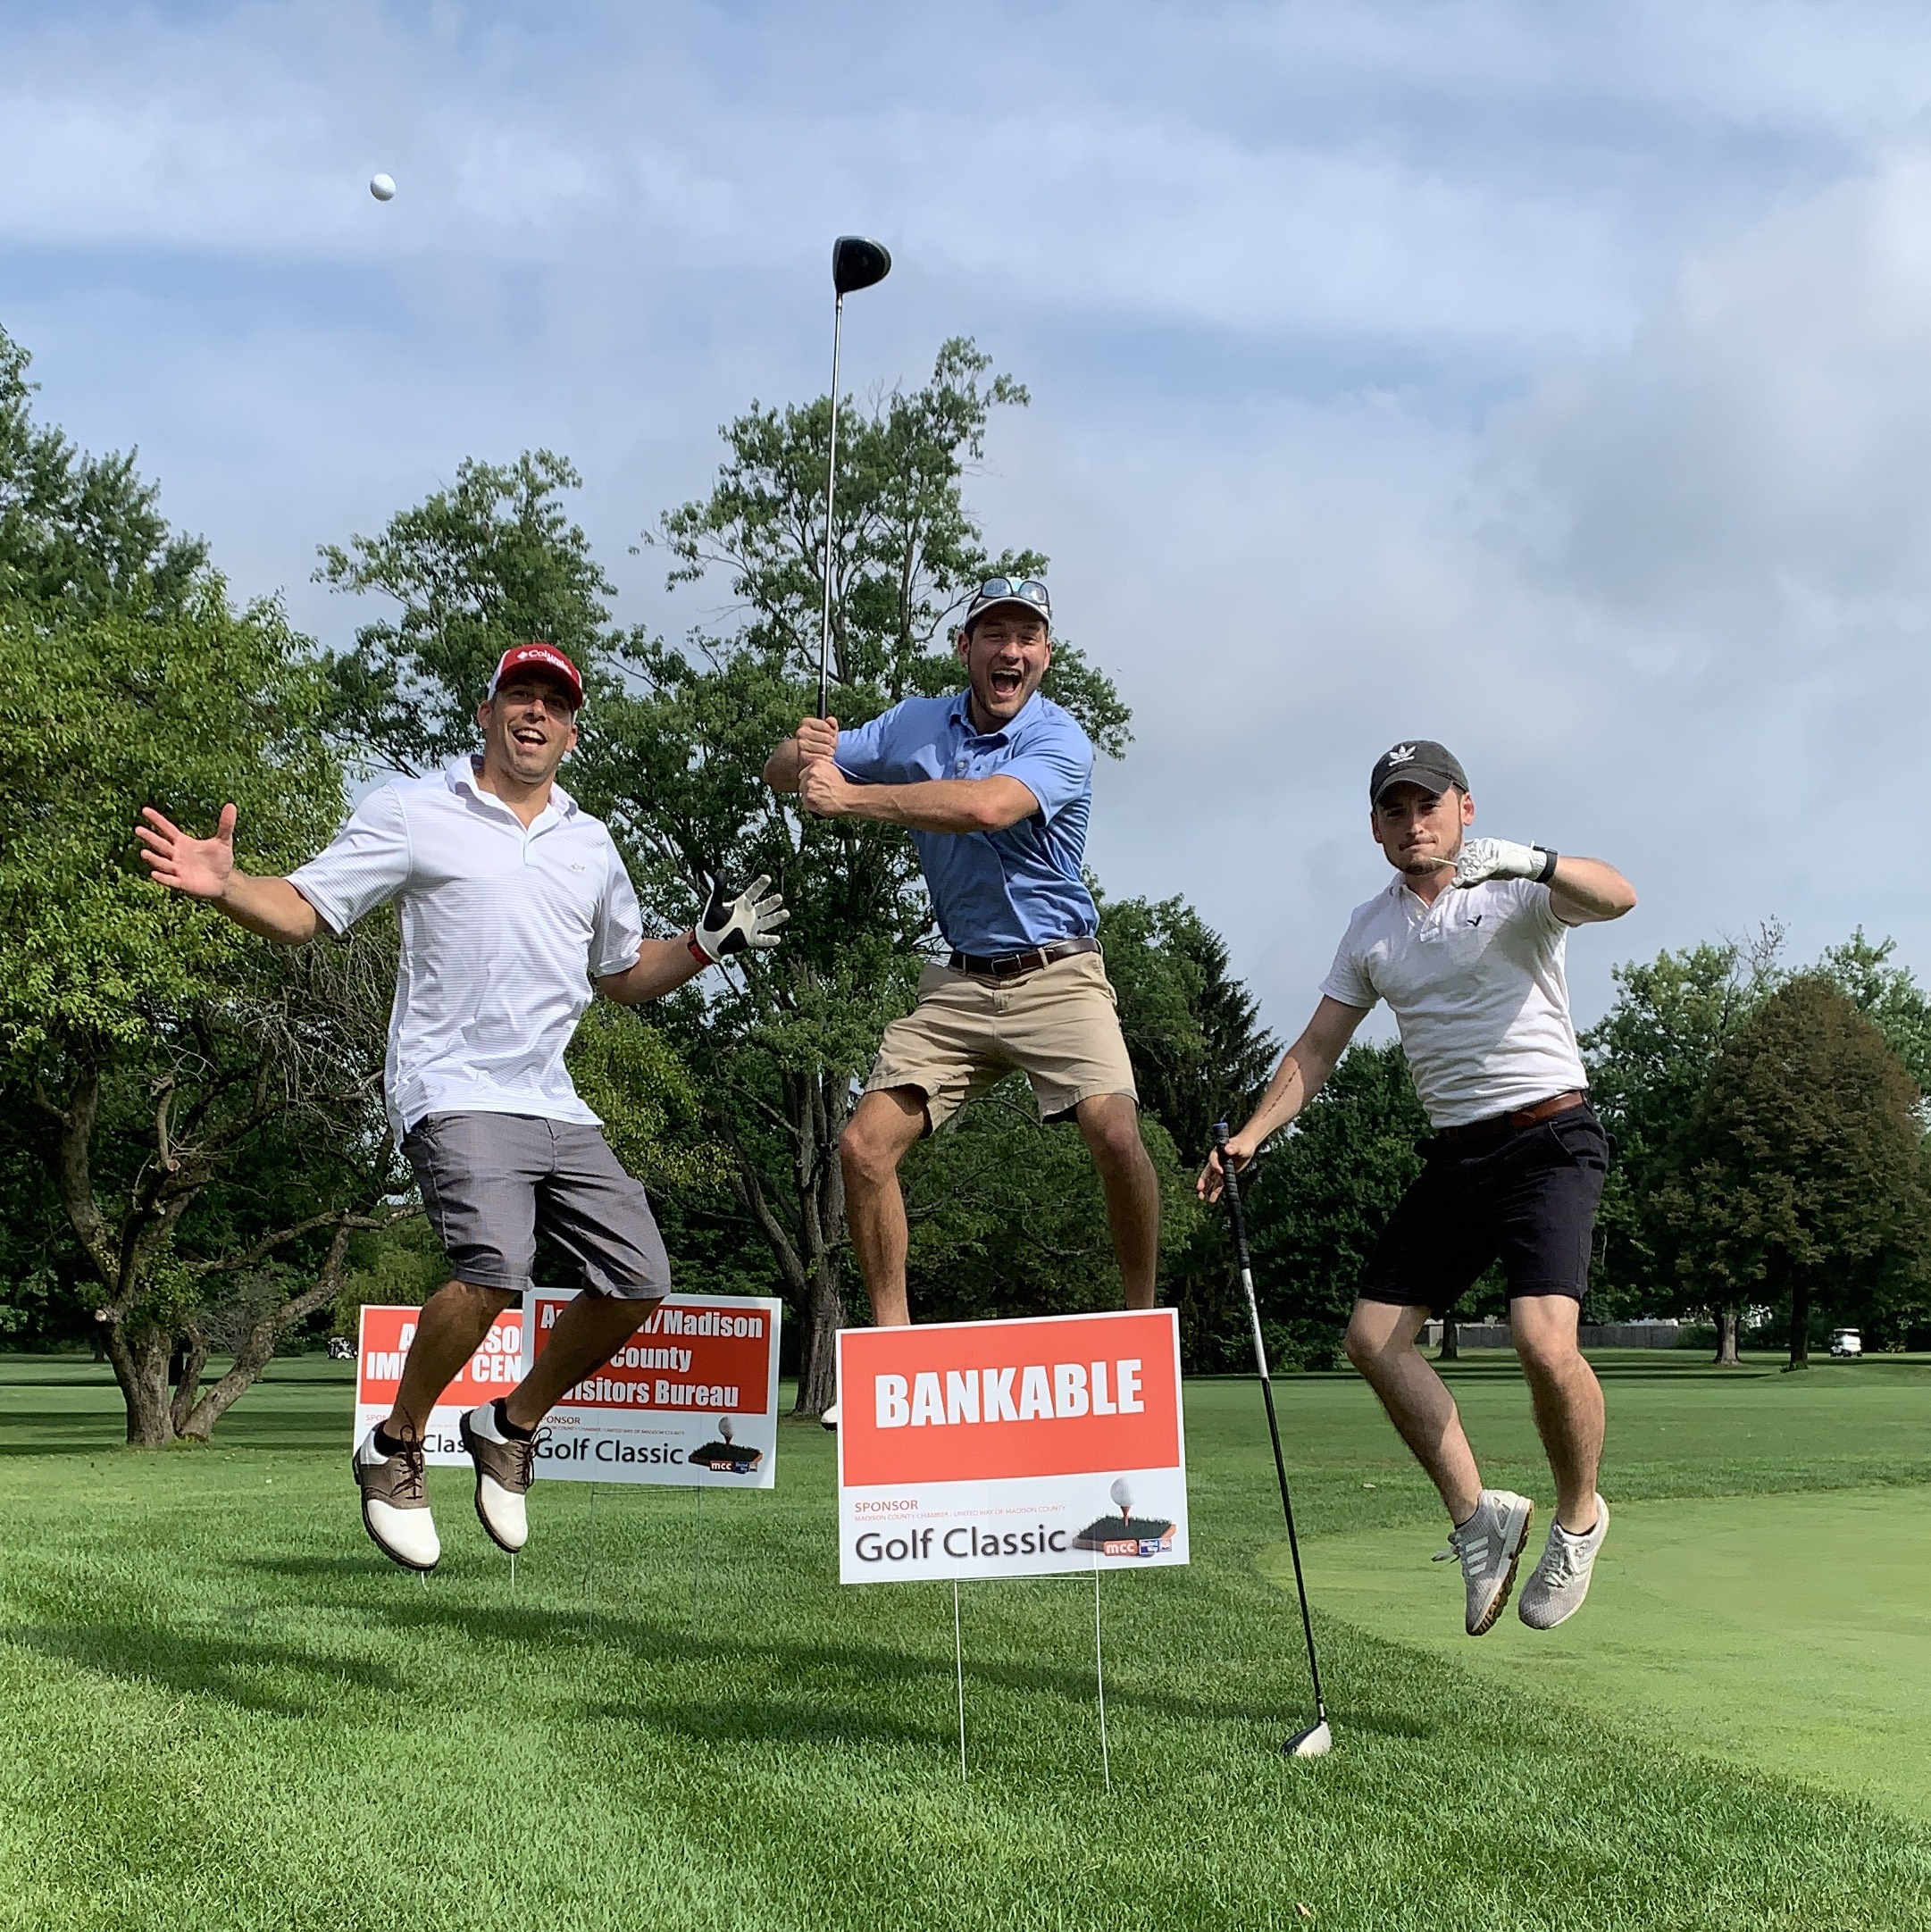 Bankable golf outing